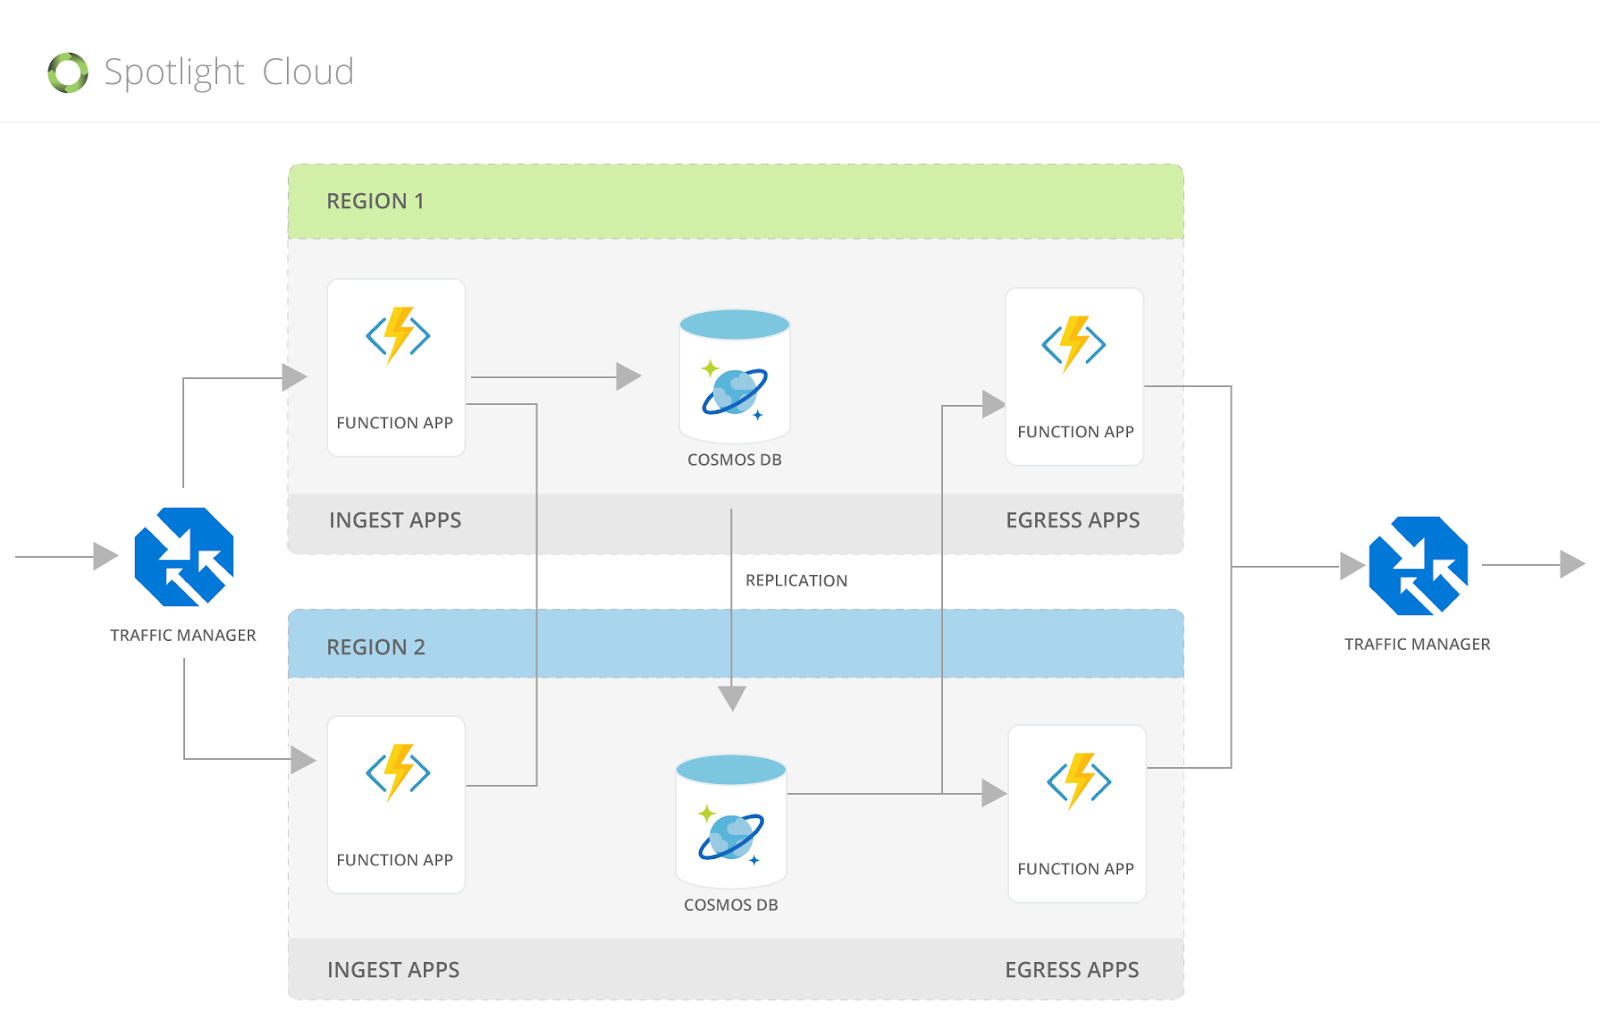 Deployment Diagram of Spotlight Cloud's Ingest and Egress app